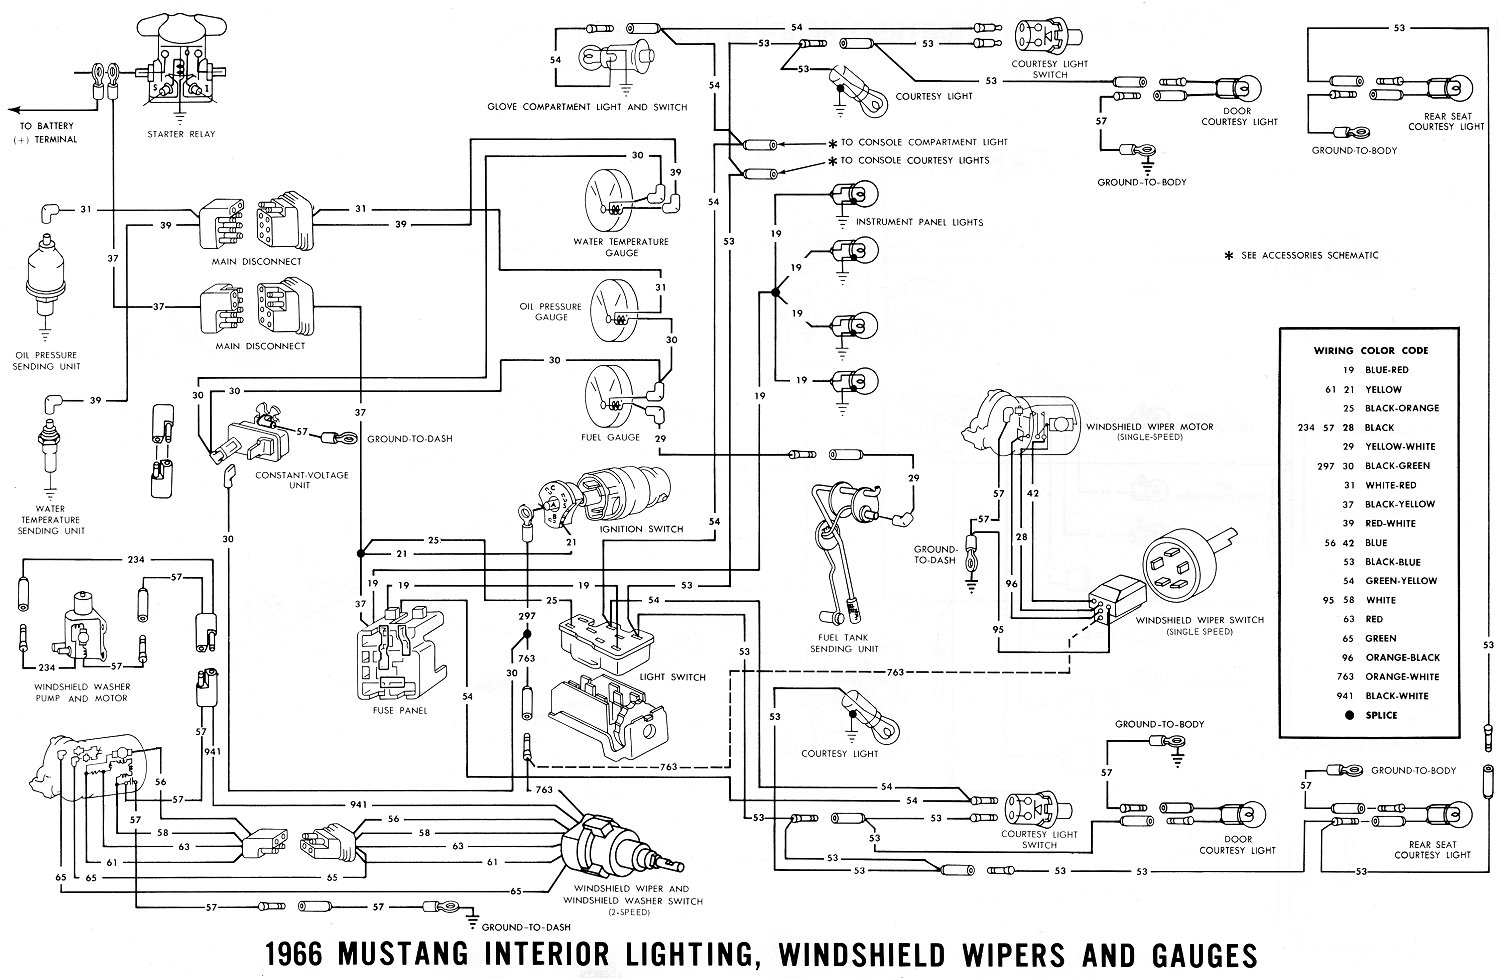 1966 Mustang Interior Lighting Diagram lelu's 66 mustang 1966 mustang wiring diagrams 1966 mustang fog light wiring diagram at soozxer.org